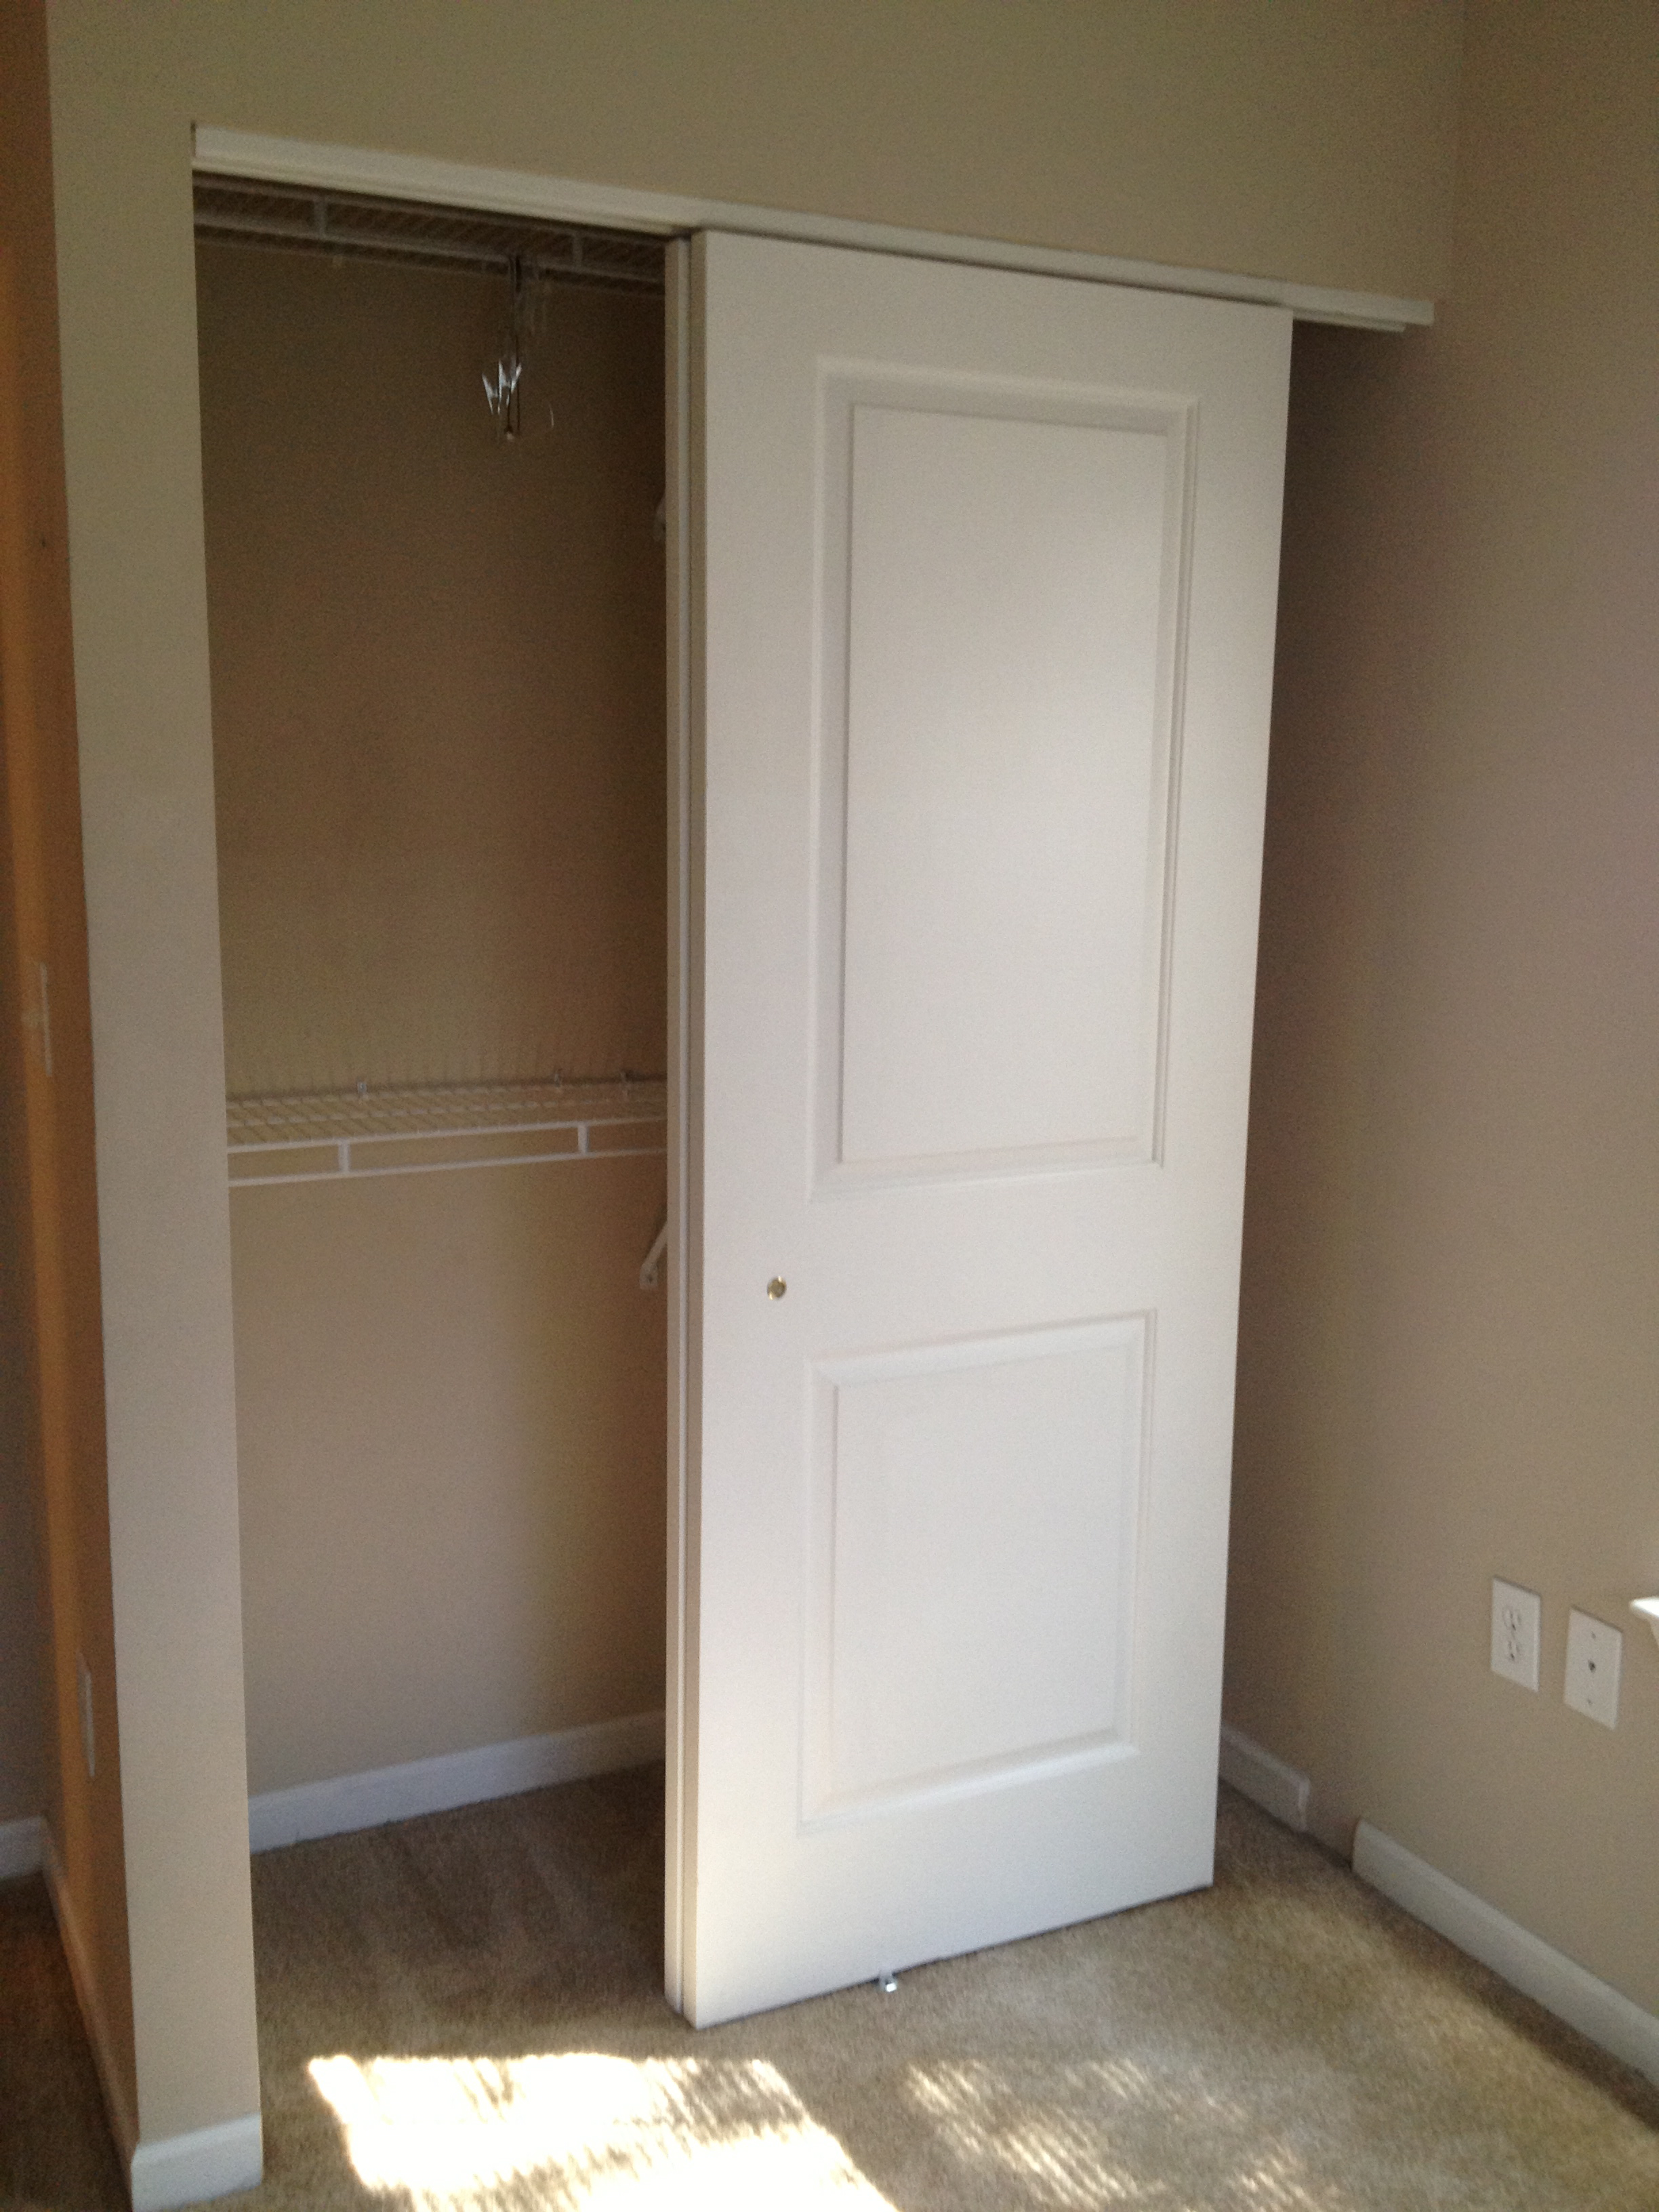 home depot doors interiordustytrailbookscom - Closet Design Home Depot